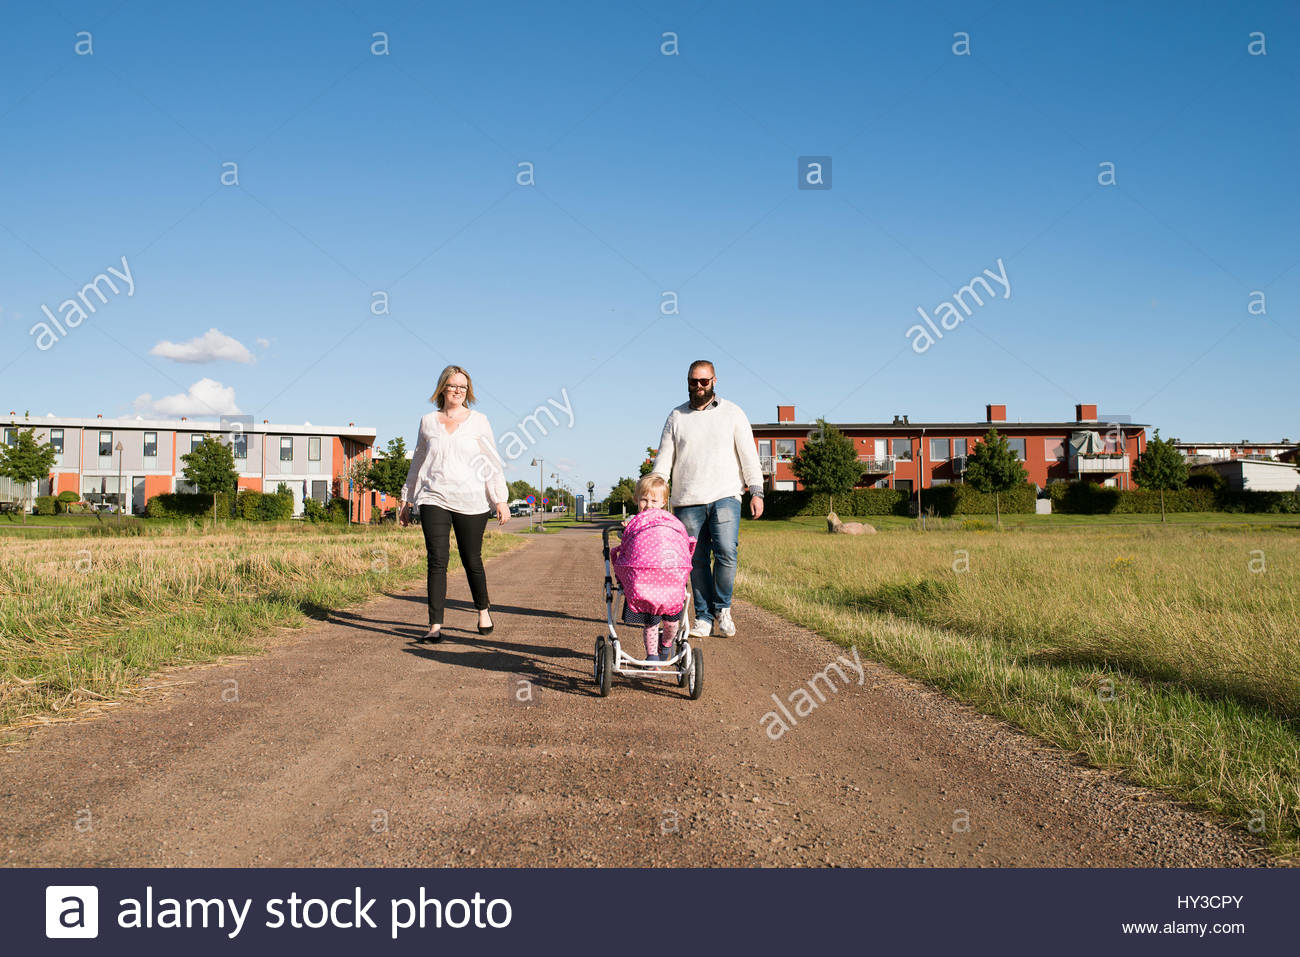 Sweden, Parents and daughter (2-3) walking in rural setting - Stock Image